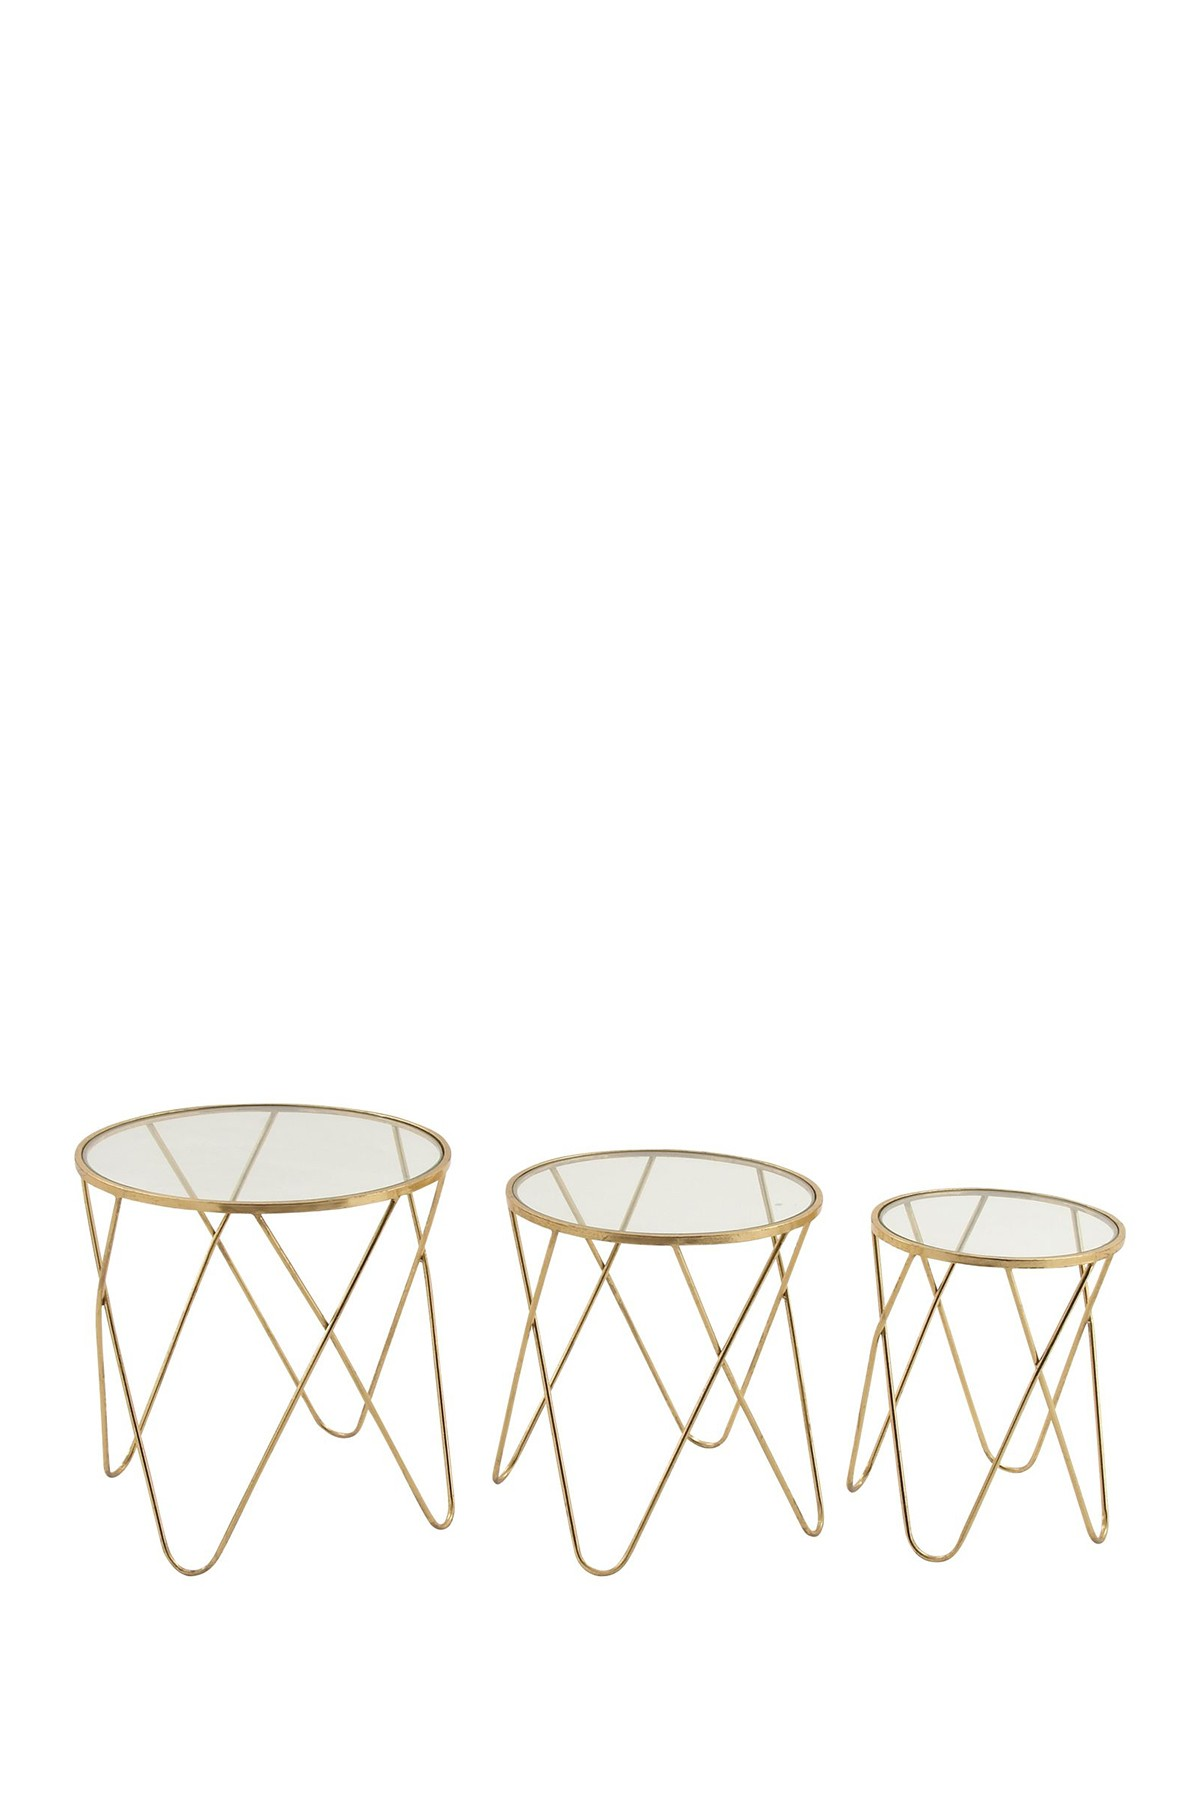 uma metal glass accent tables set nordstrom rack table round pedestal dining narrow outdoor target white and gold side dcuo occult location large end small cherry wood lamp ashley